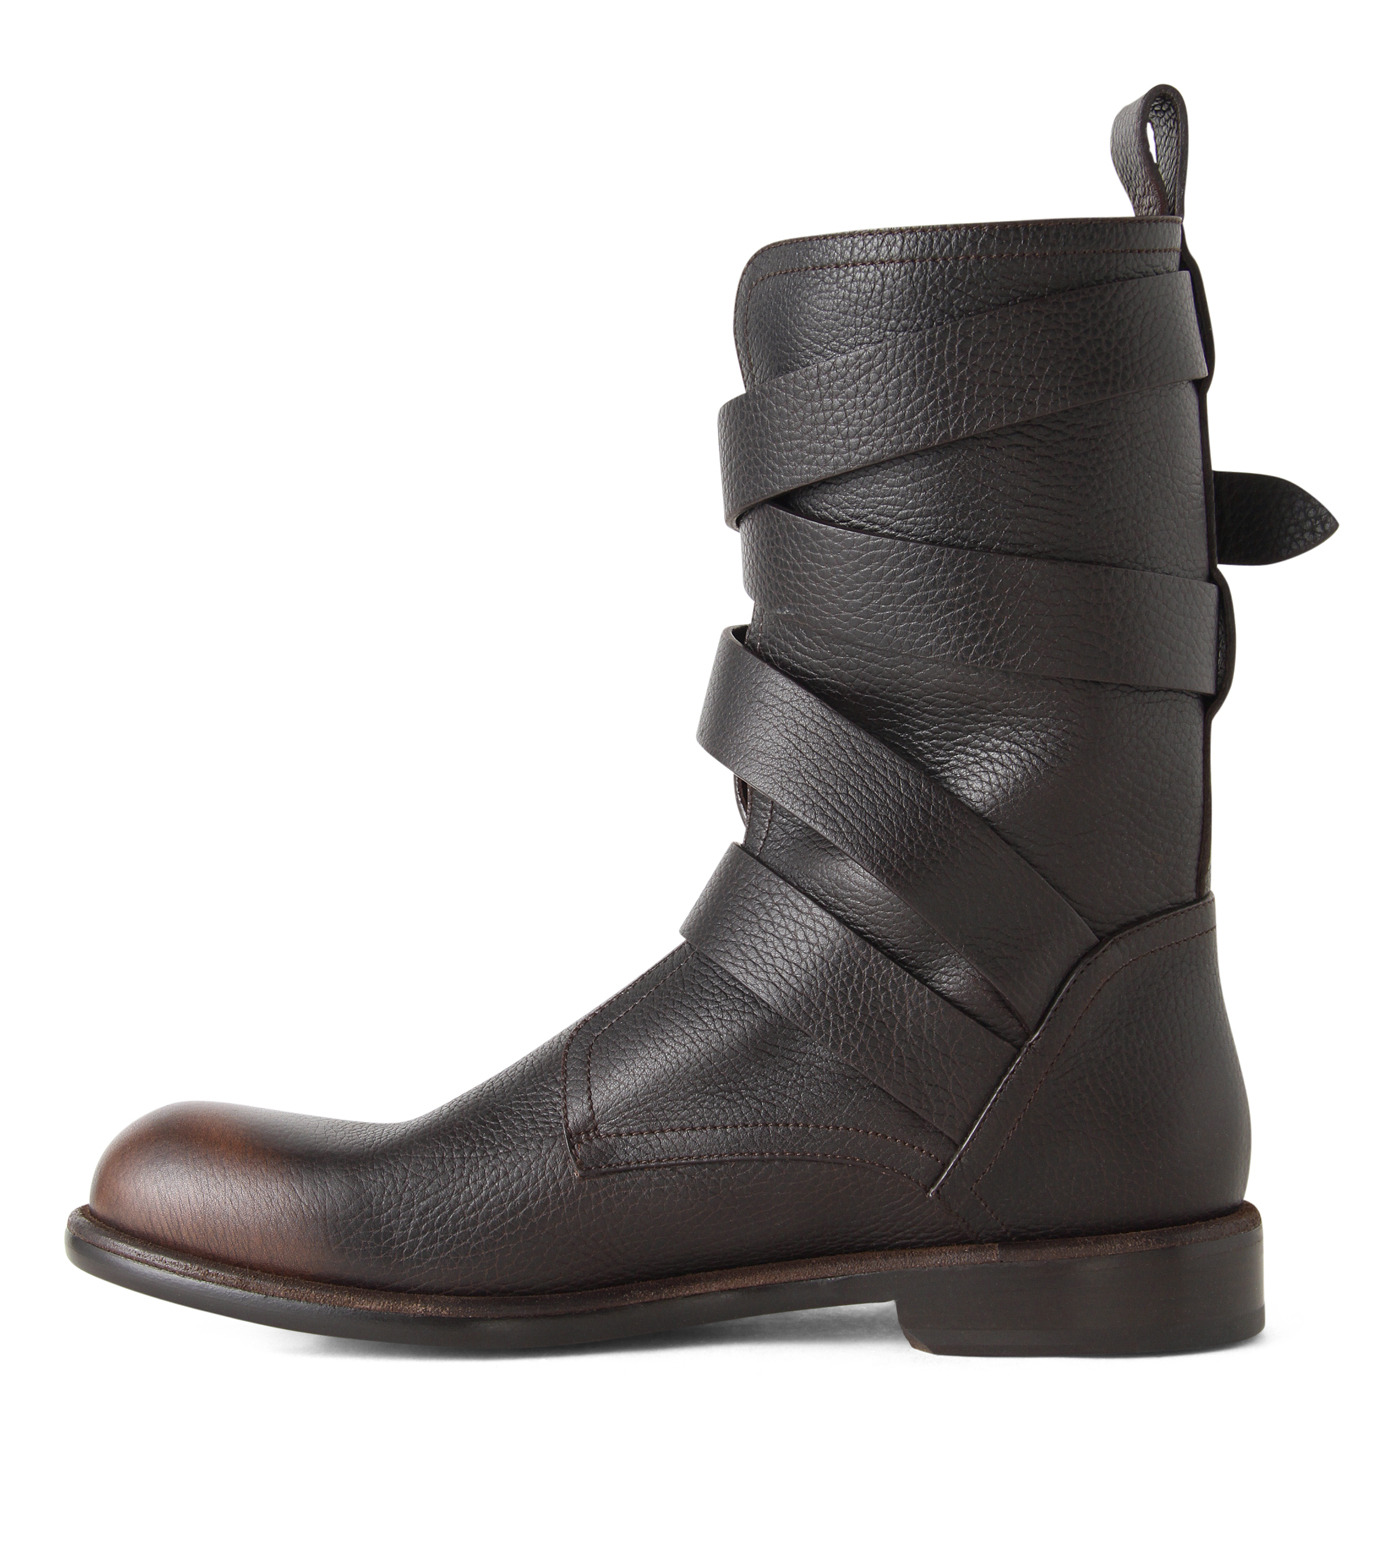 Jimmy Choo(ジミーチュウ)のBelted Boots-BROWN(ブーツ/boots)-152RIDLE-GBL-42 拡大詳細画像2